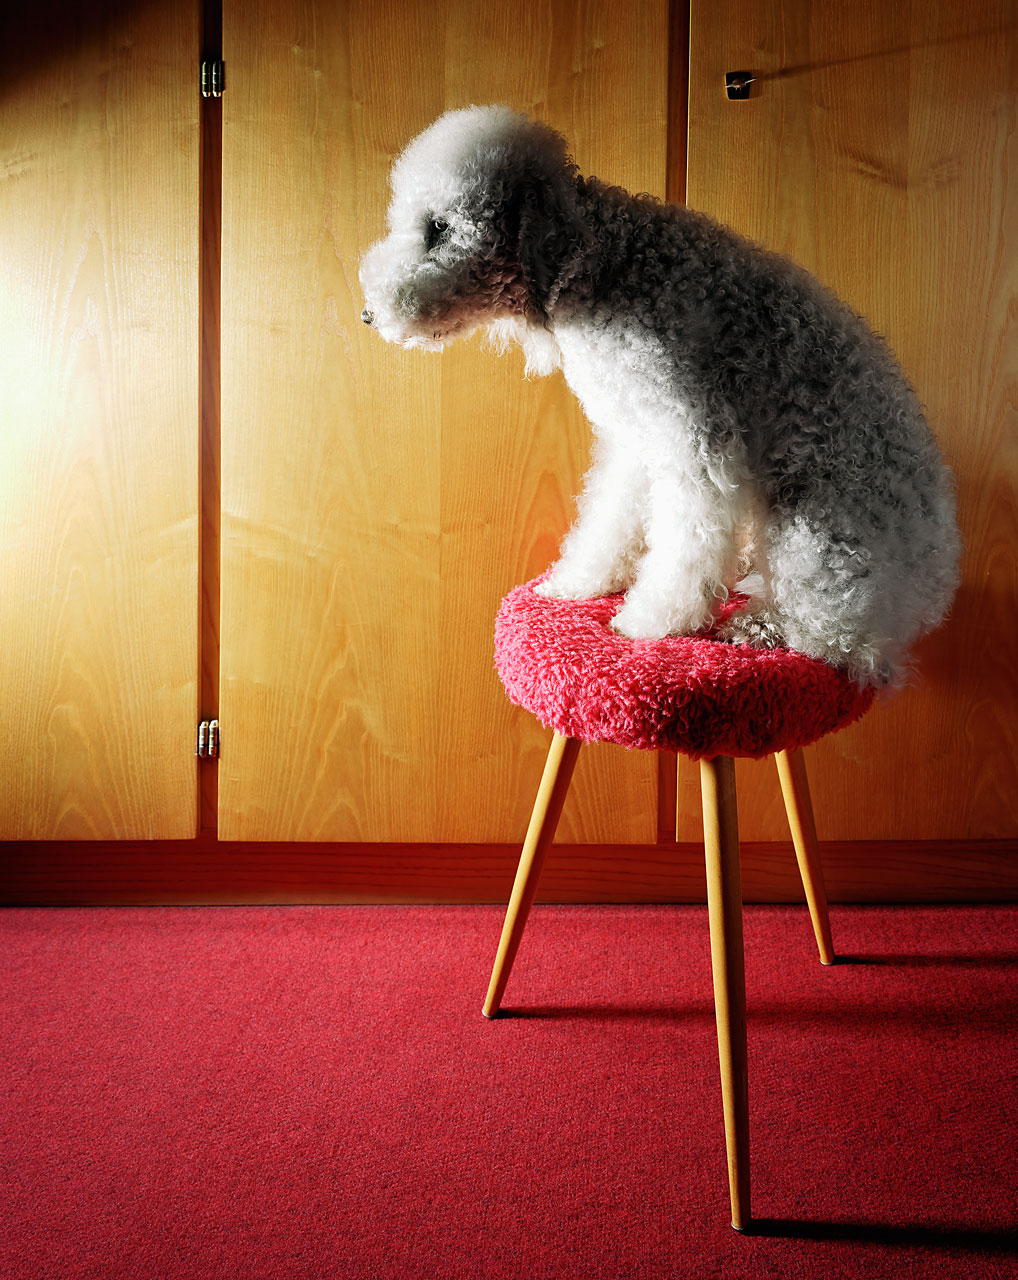 Sabine-Scheer-animal-photography-bedlington-terrier-chair